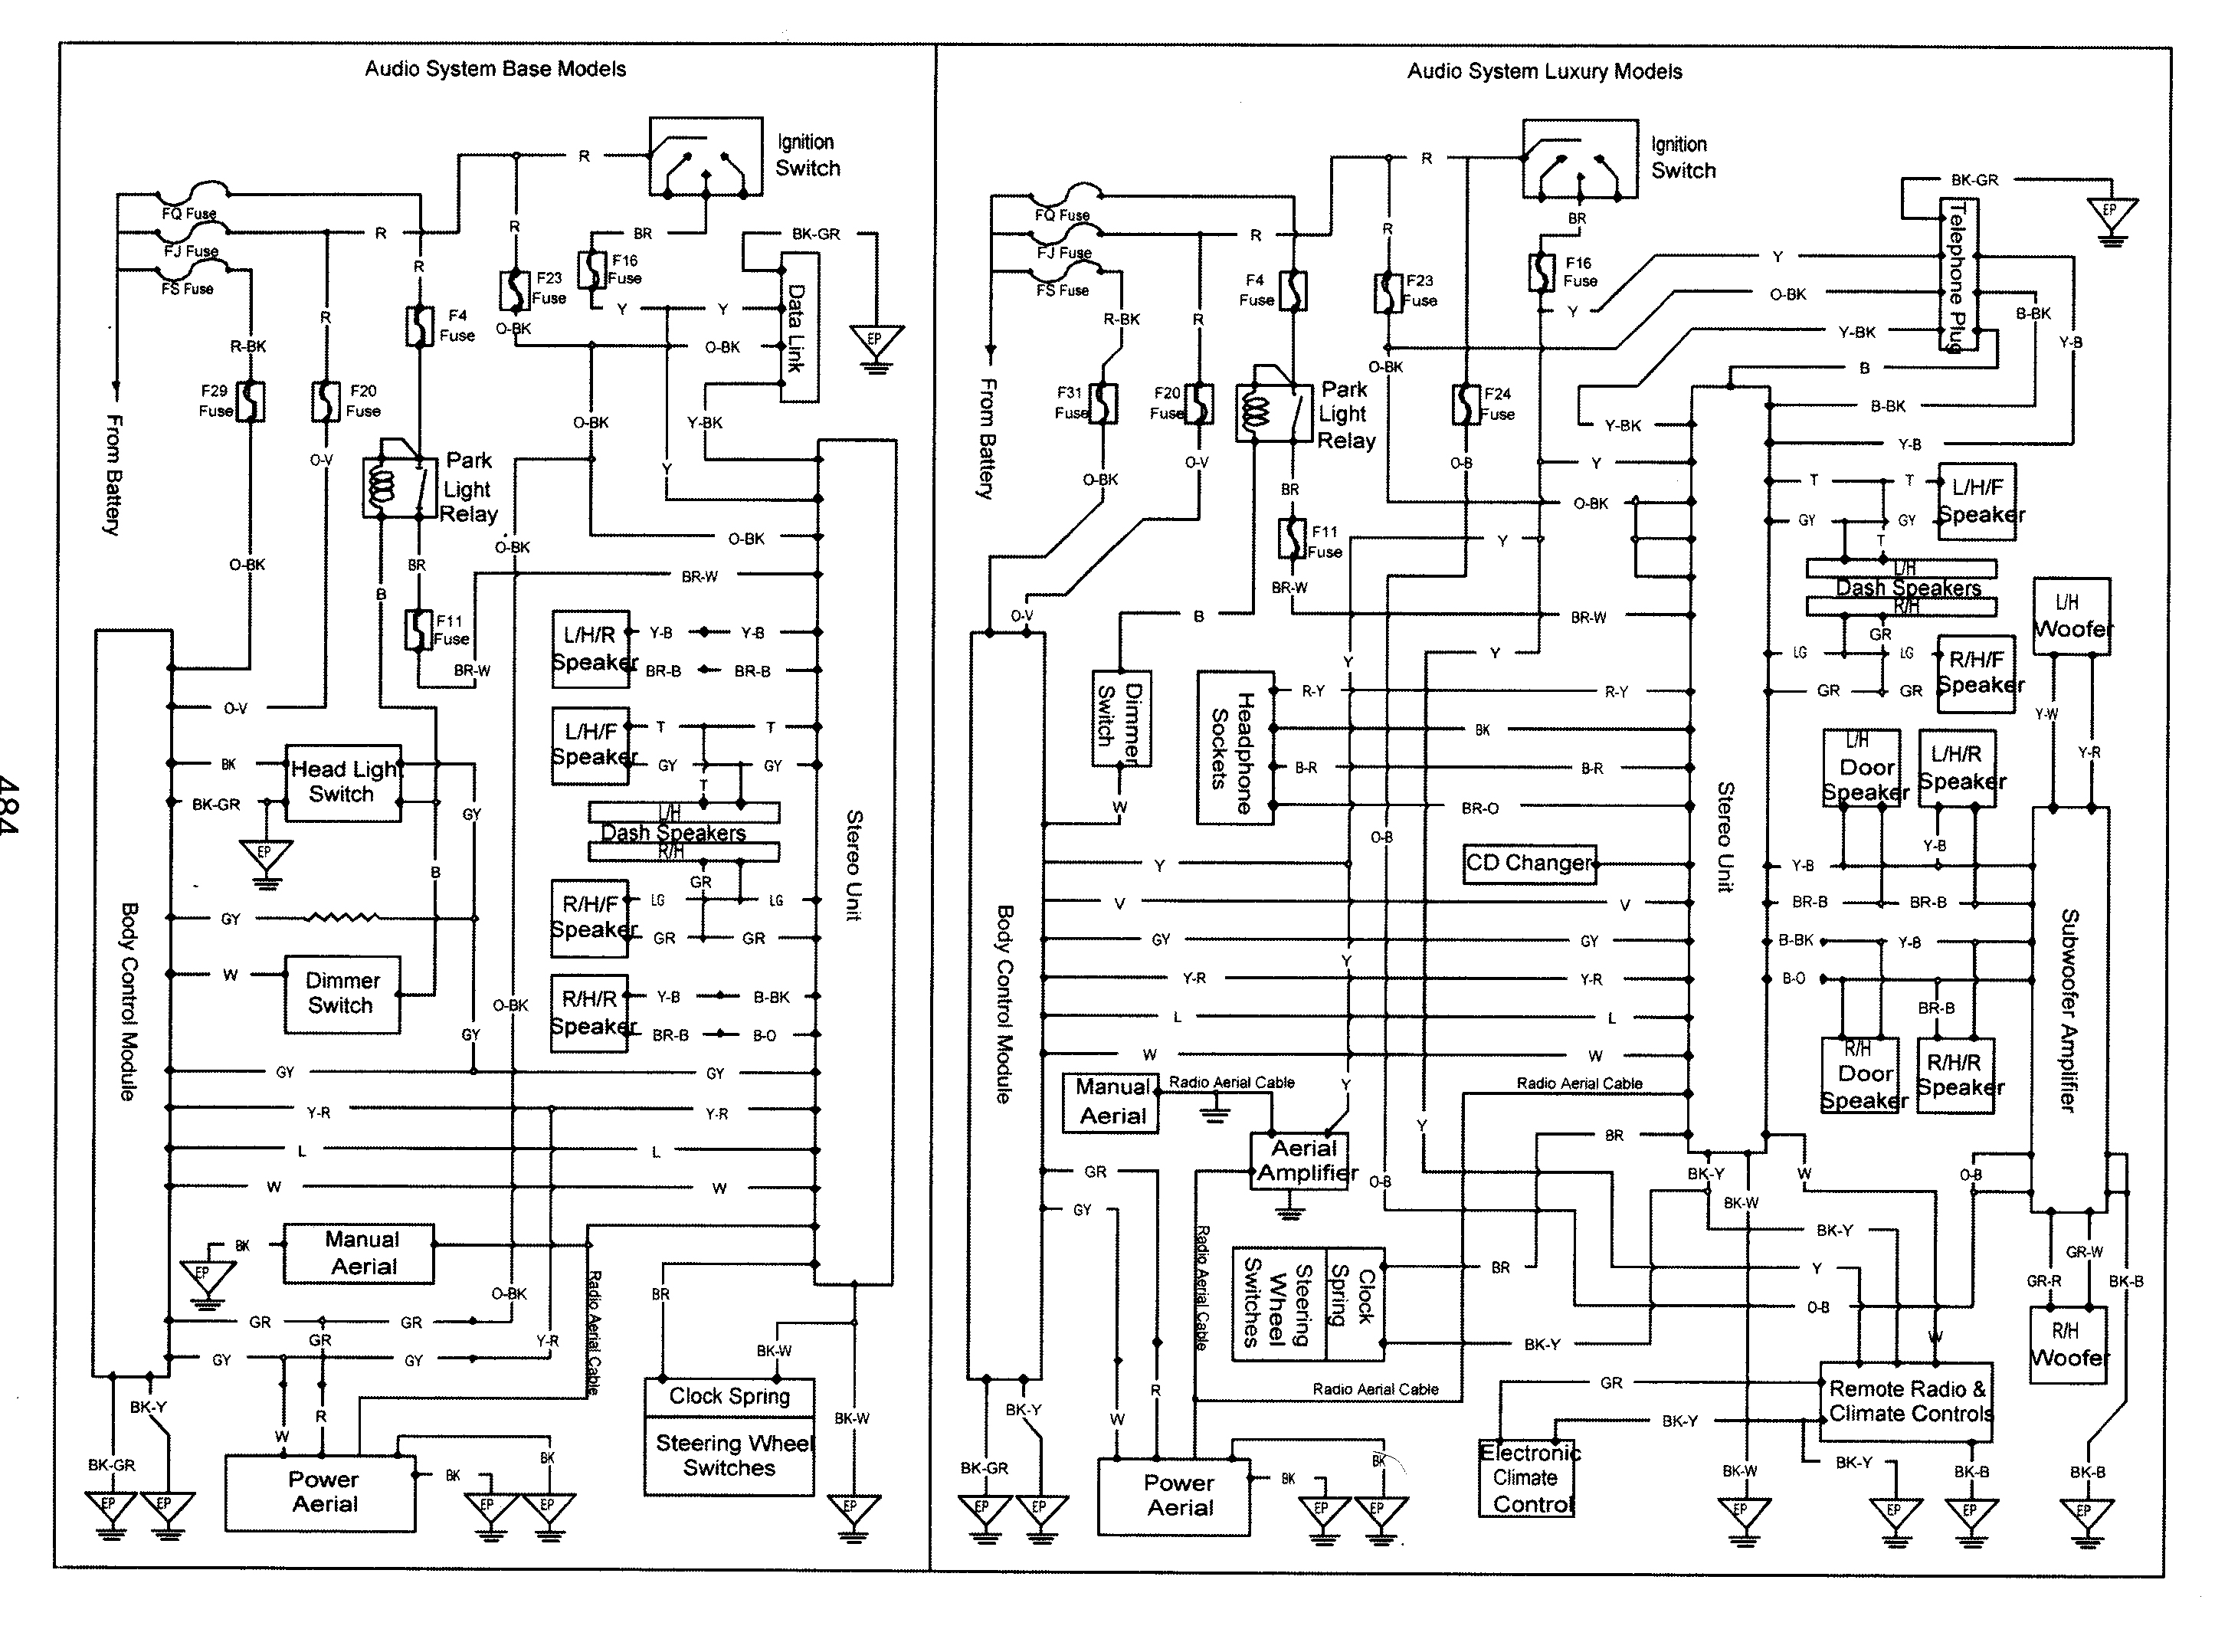 IMG_009?resized665%2C496 vz wiring diagram efcaviation com vz bcm wiring diagram at edmiracle.co